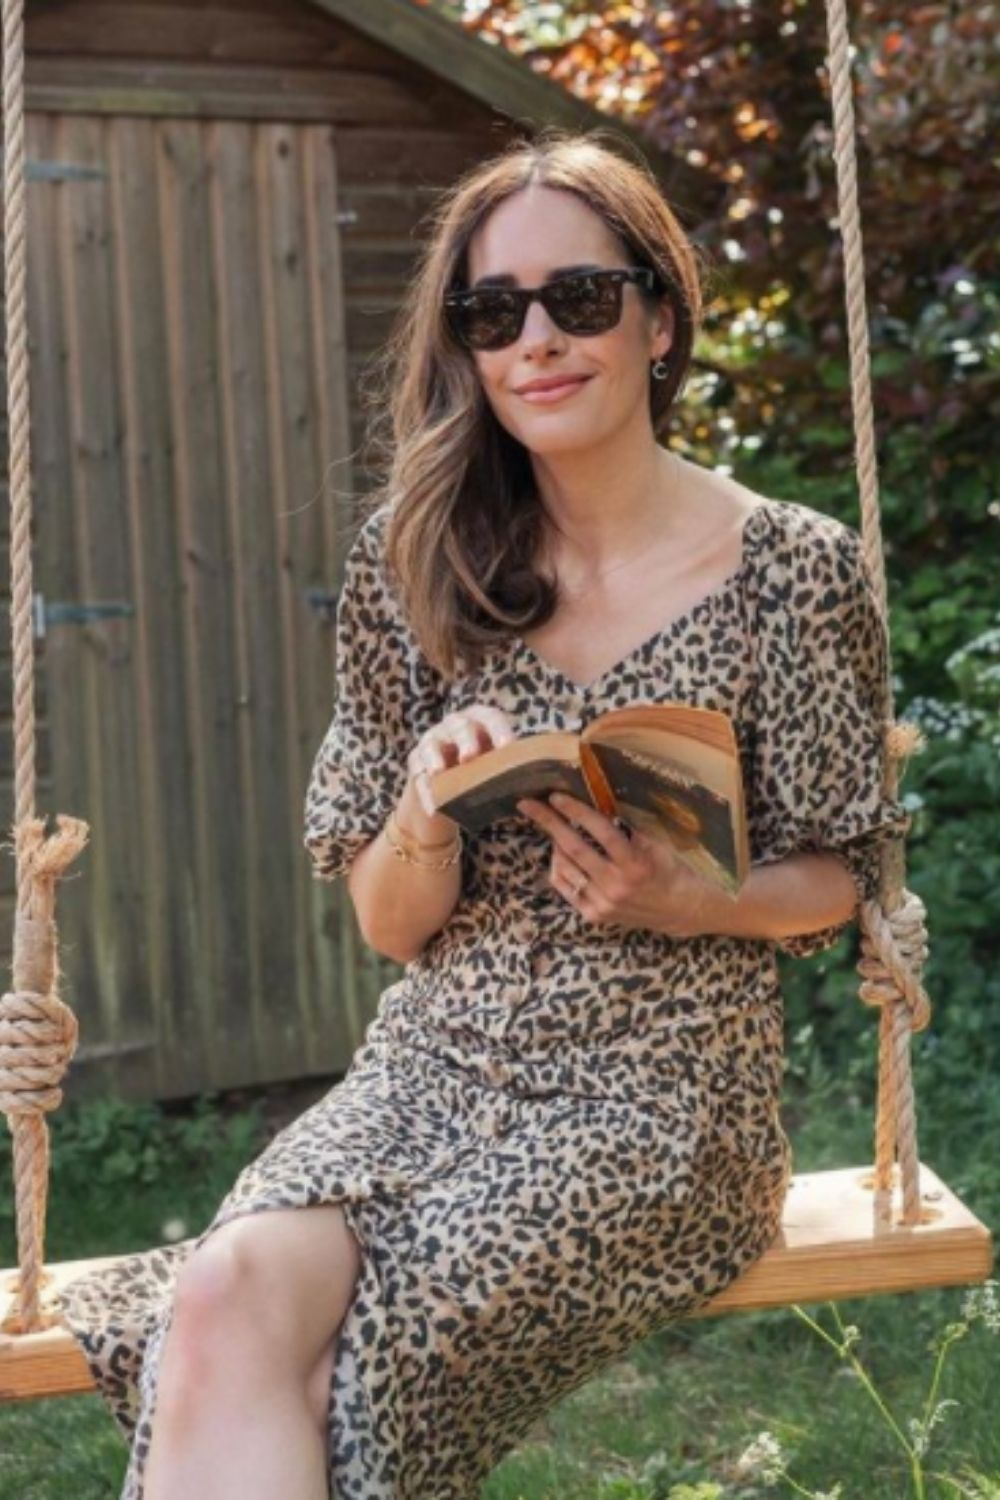 Cool Leopard Outfit Design